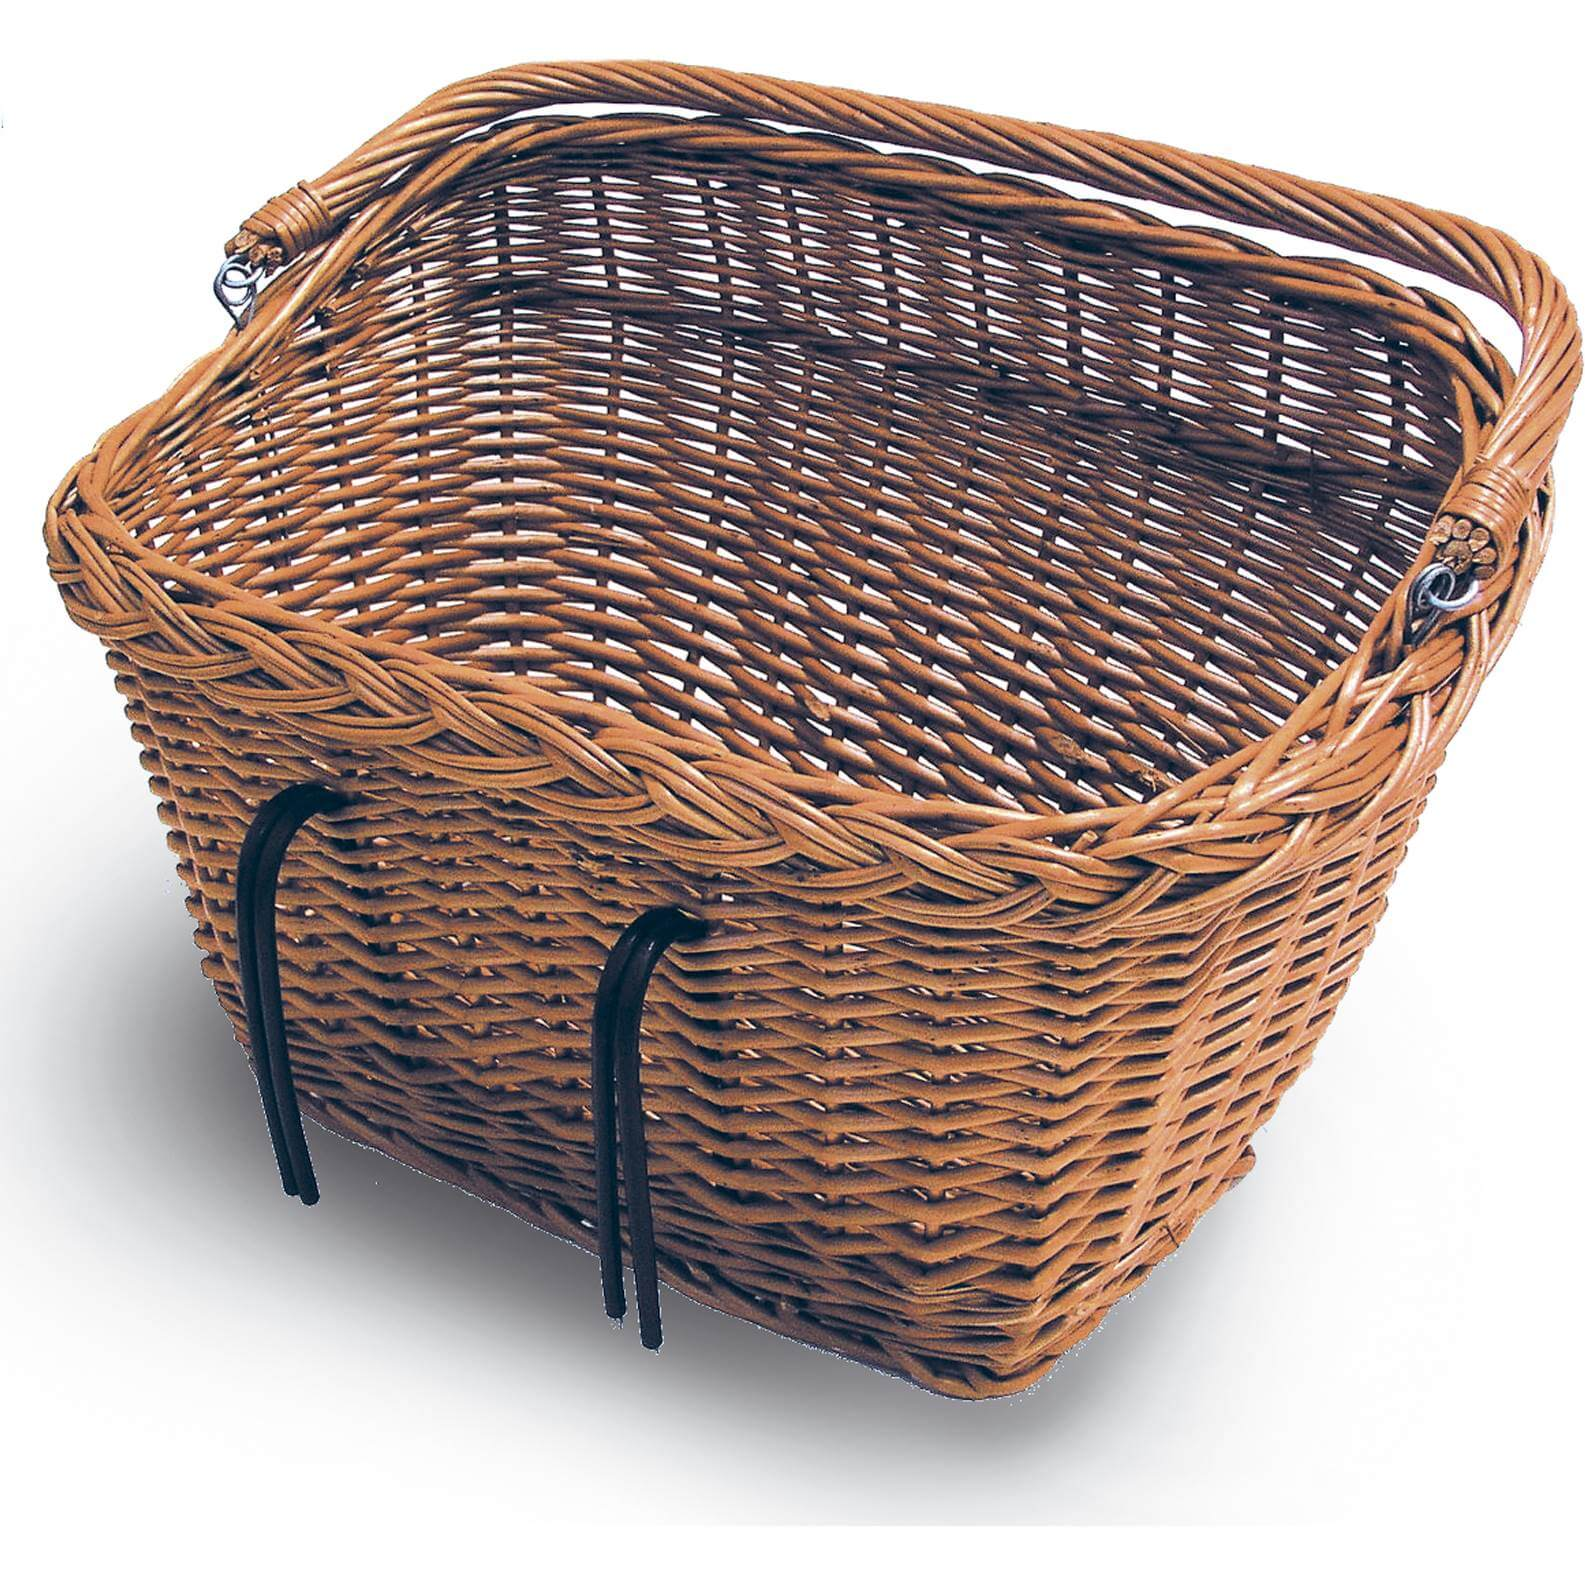 Basil Wicker Bicycle Basket Dublin Square With Belly